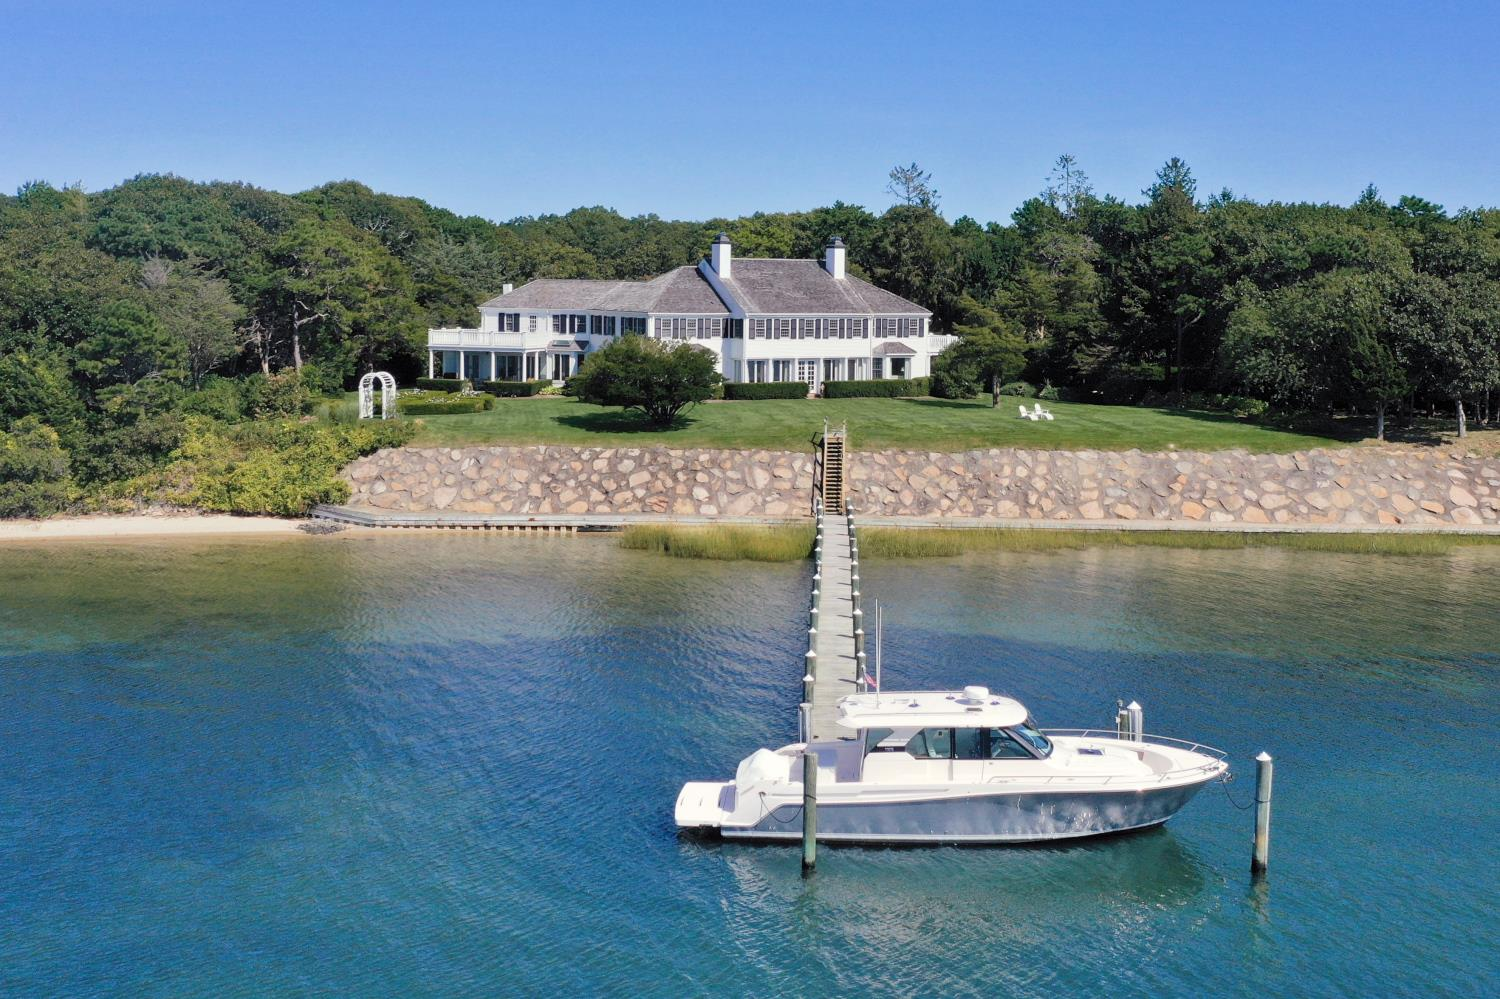 Record Cape Cod sale for Robert Paul Properties